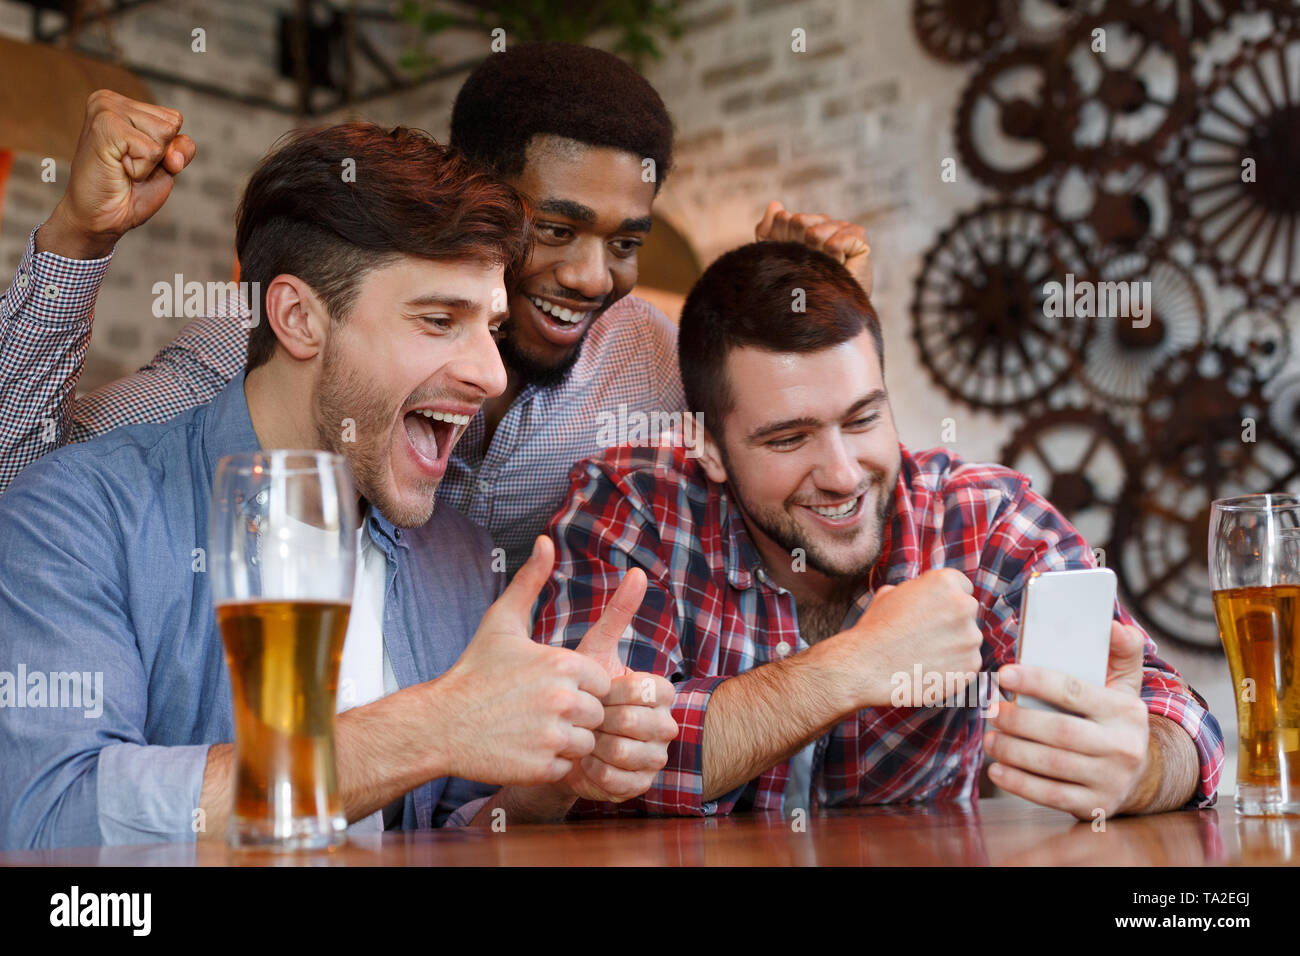 Male Friends Having Video-Call On Smartphone In Bar Stock Photo